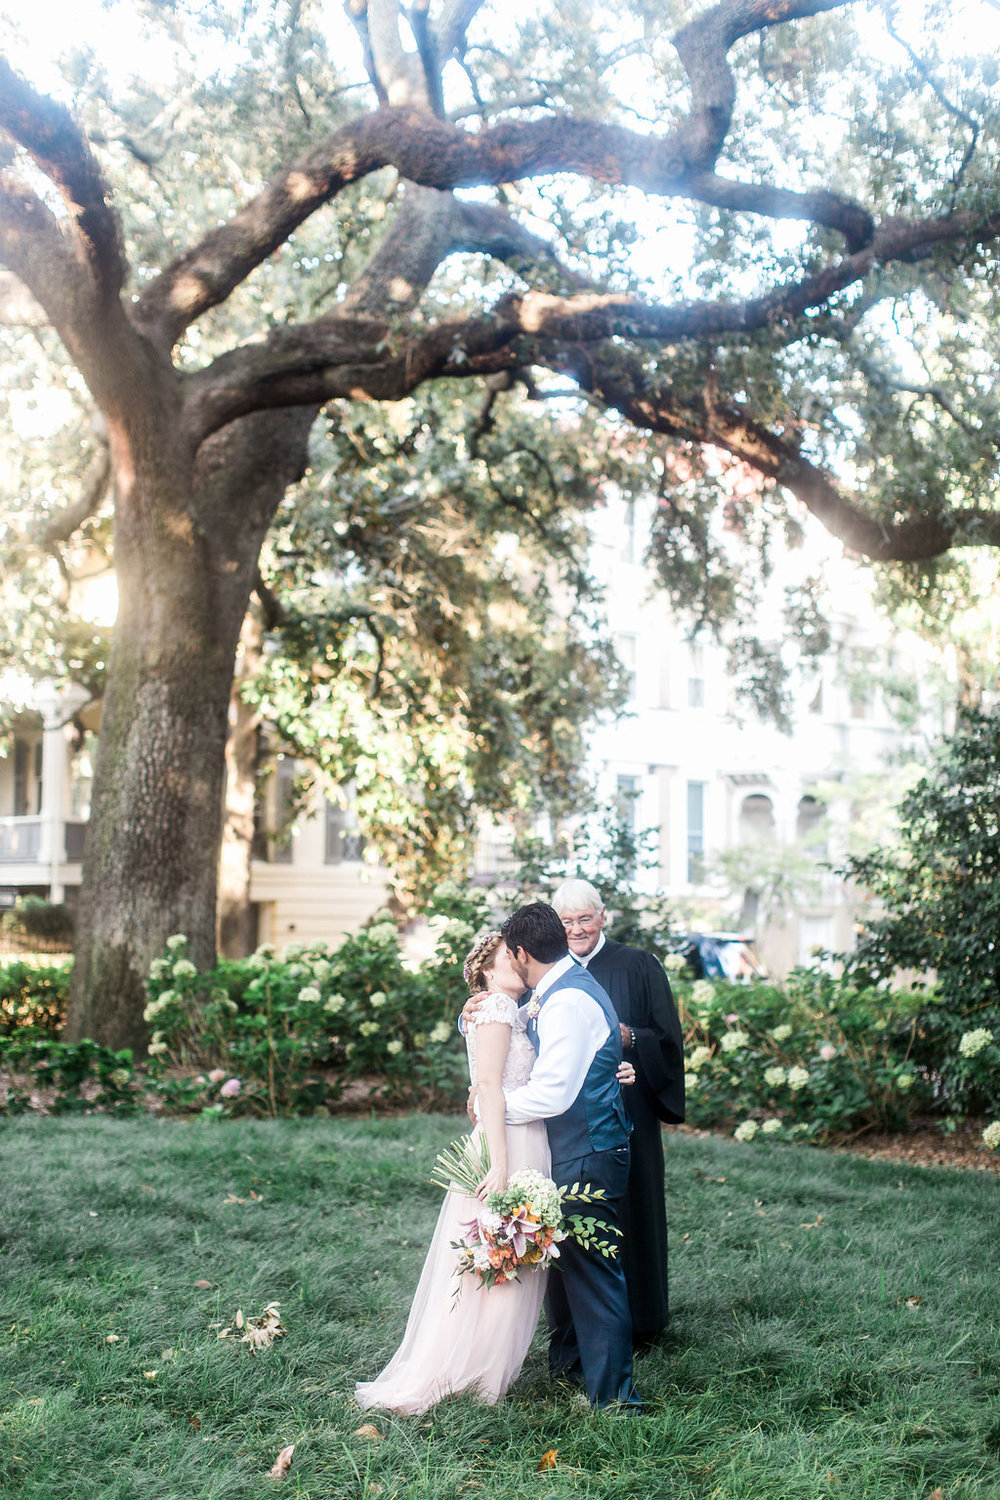 ivory-and-beau-bridal-boutique-savannah-wedding-dress-savannah-wedding-gown-savannah-bridal-boutique-savannah-bridesmaids-savannah-florist-savannah-florals-savannah-wedding-flowers-savannah-wedding-planner-savannah-wedding-coordinator-7.jpg